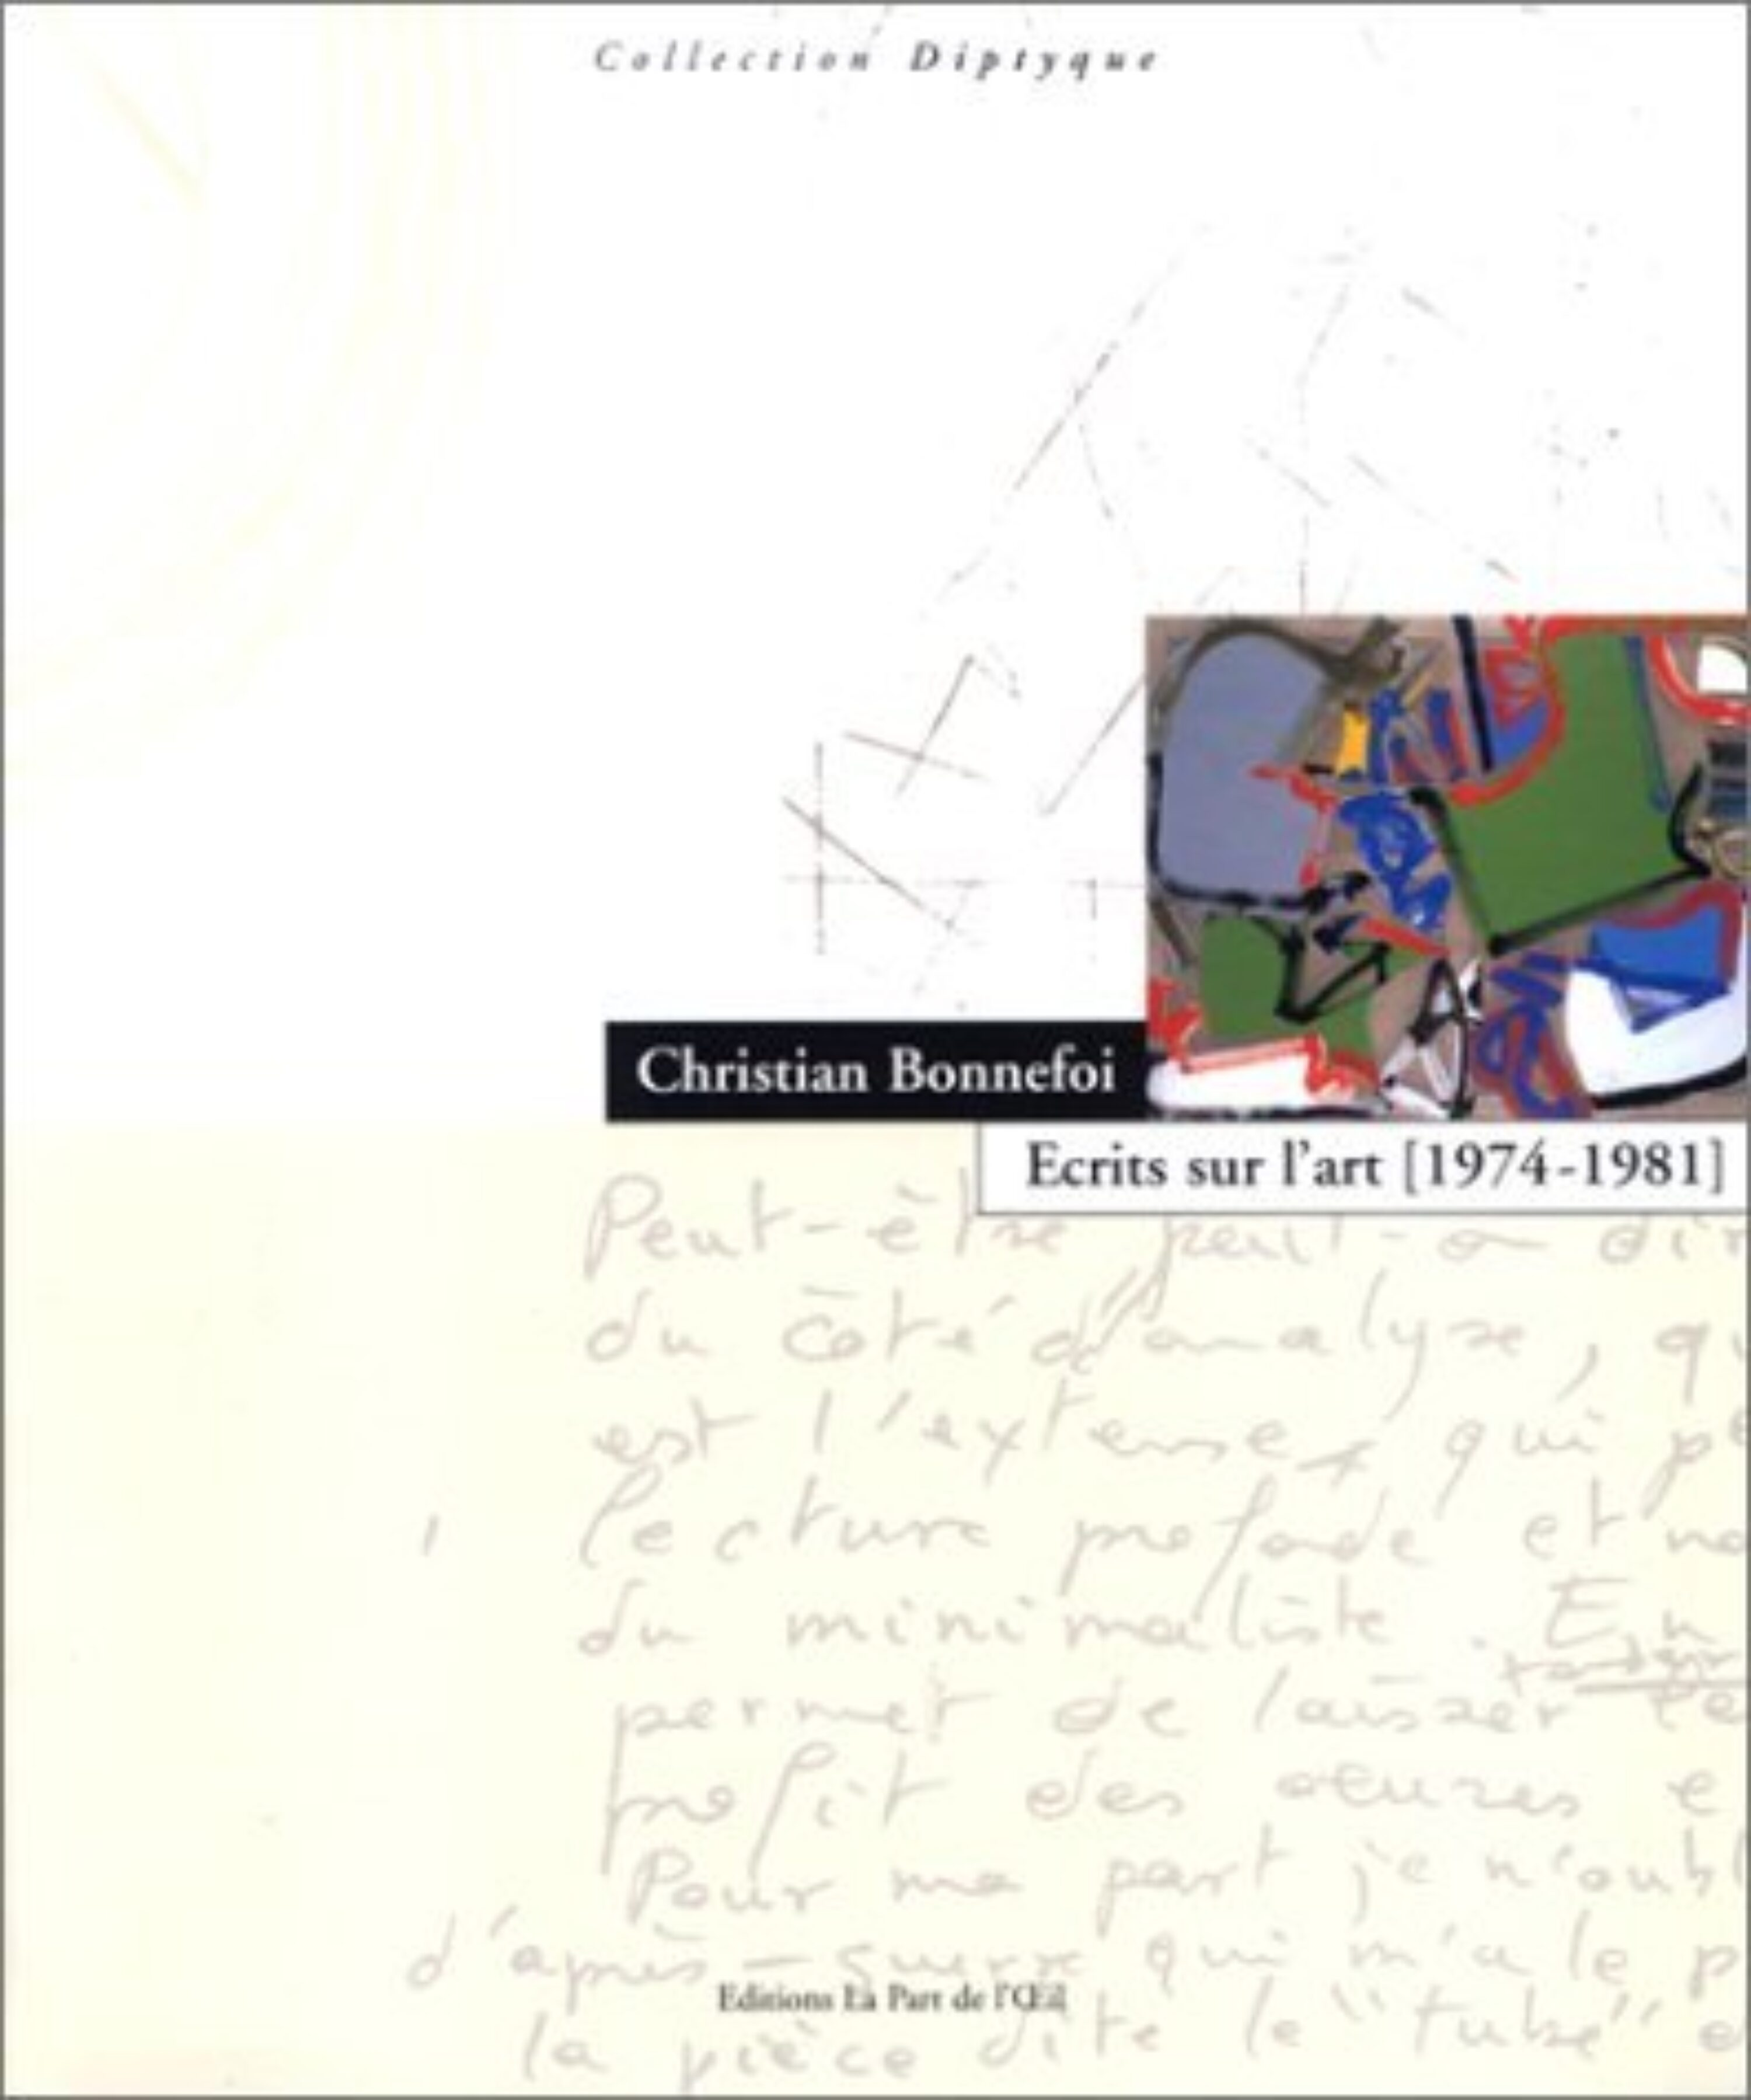 Image of the front cover of Ecrits sur l'art [1974 - 1981]